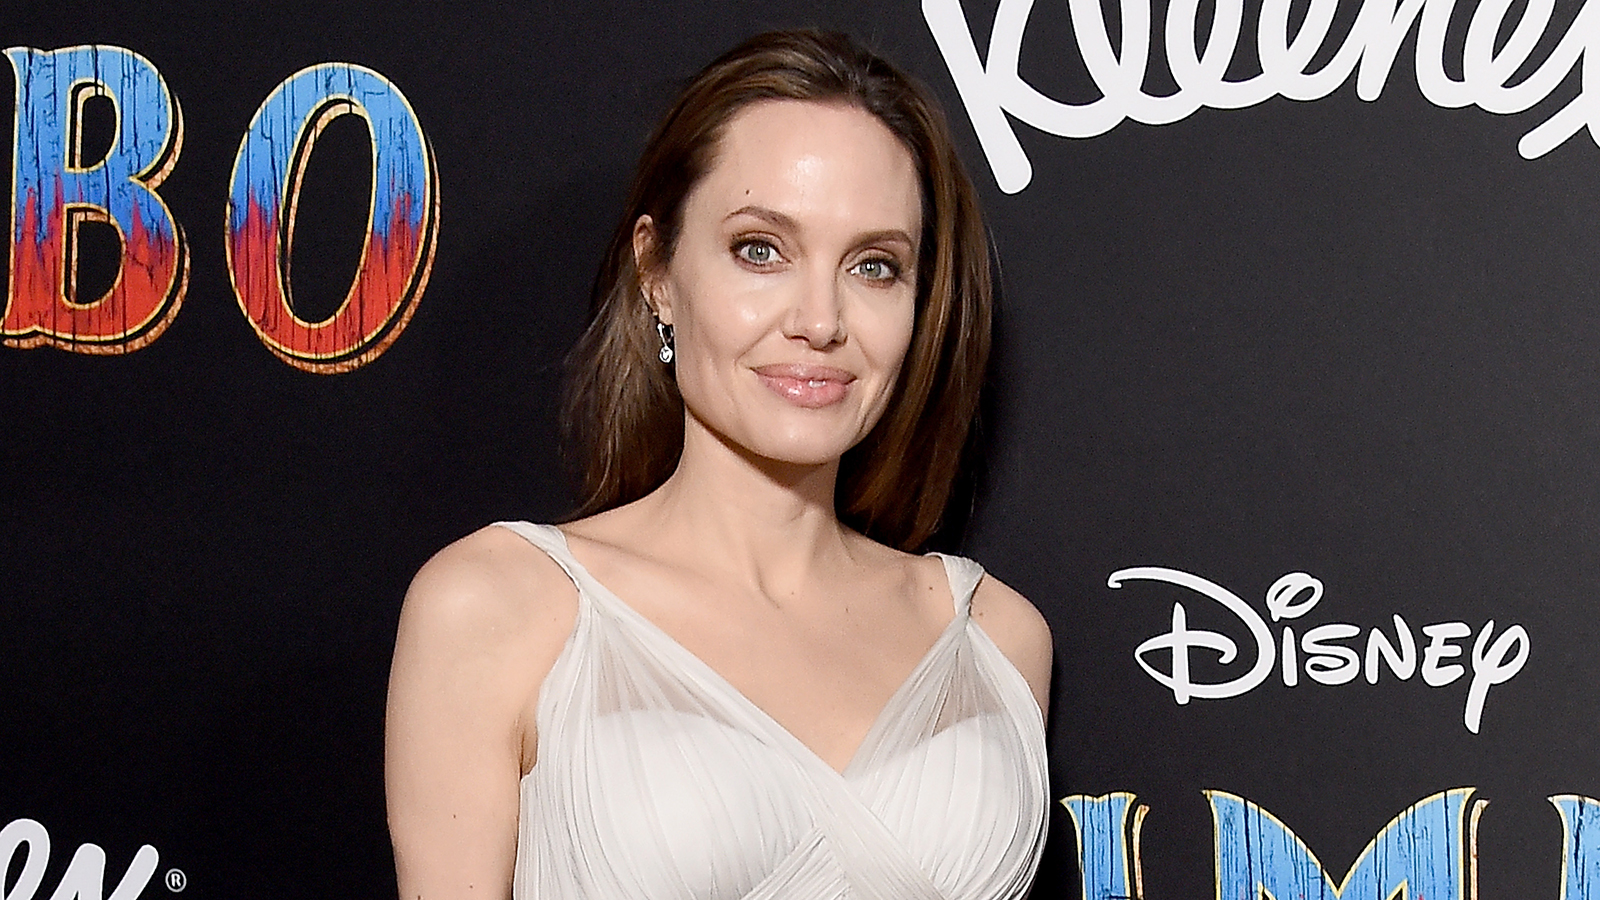 Pitt No Longer! Angelina Jolie Legally Drops Brad's Last Name